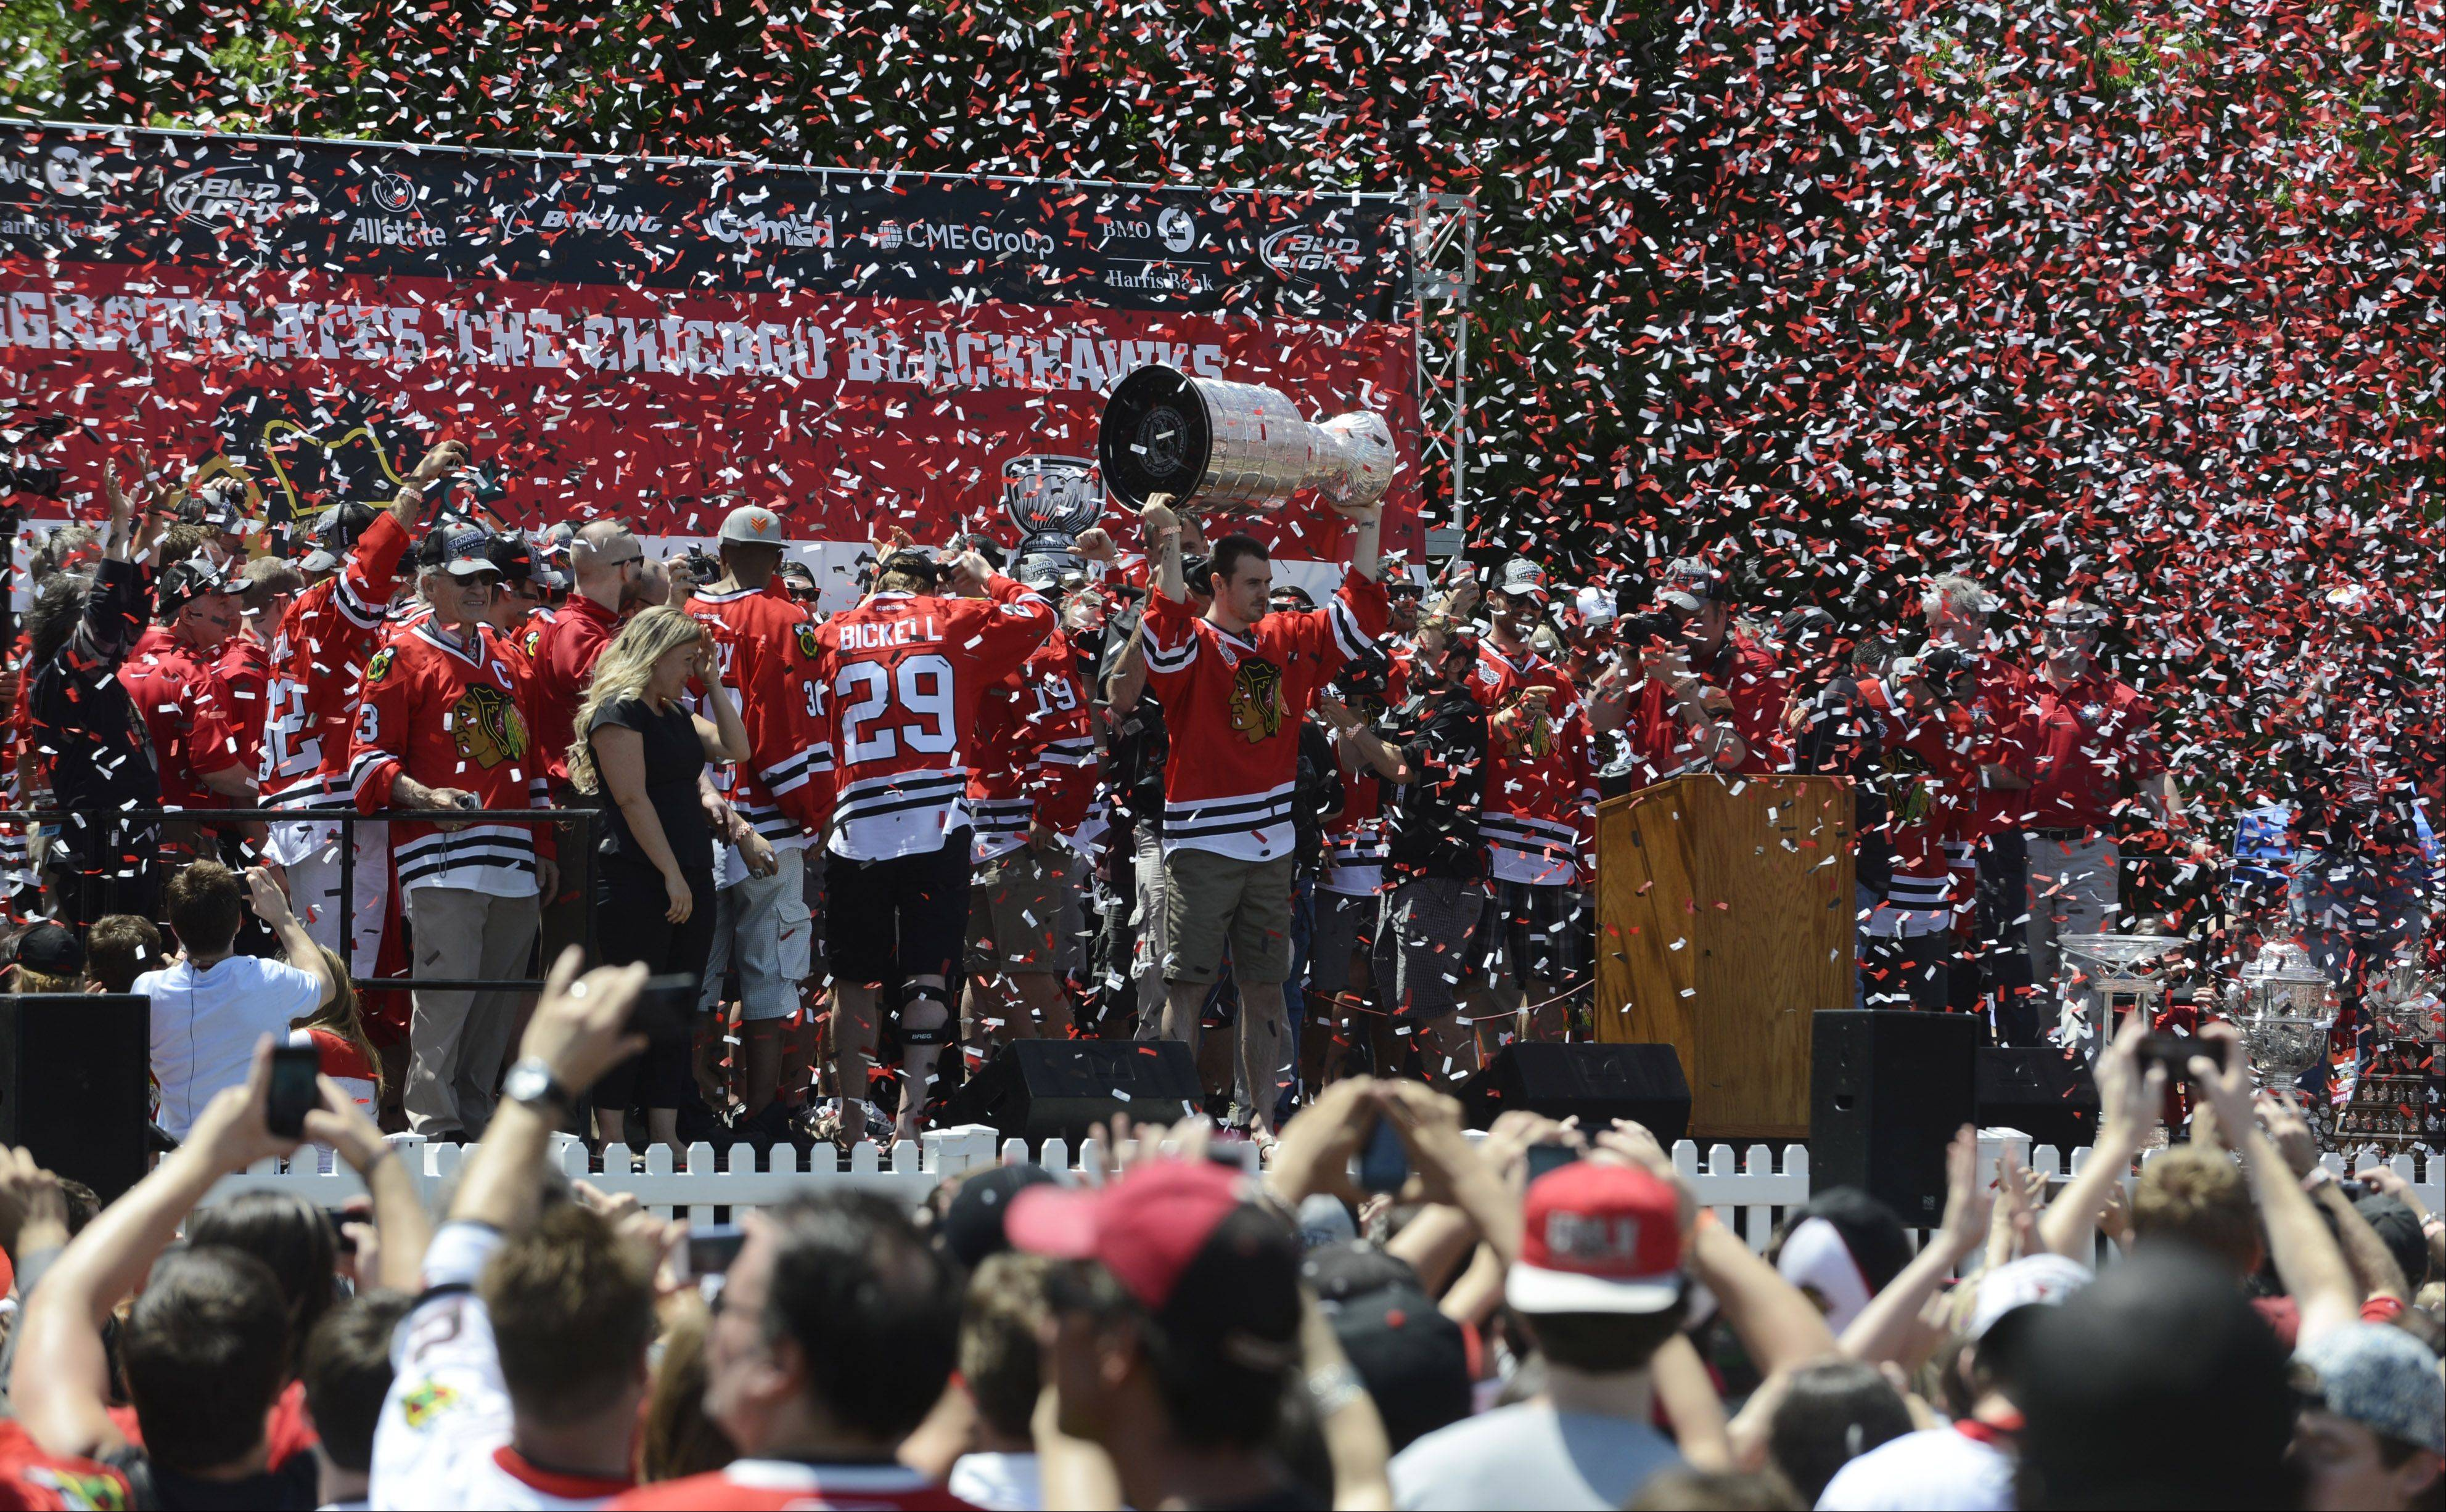 Chicago Blackhawks fans, new and old, united at Friday's rally at Hutchinson Field to celebrate a team and a franchise that has earned back their trust and admiration.